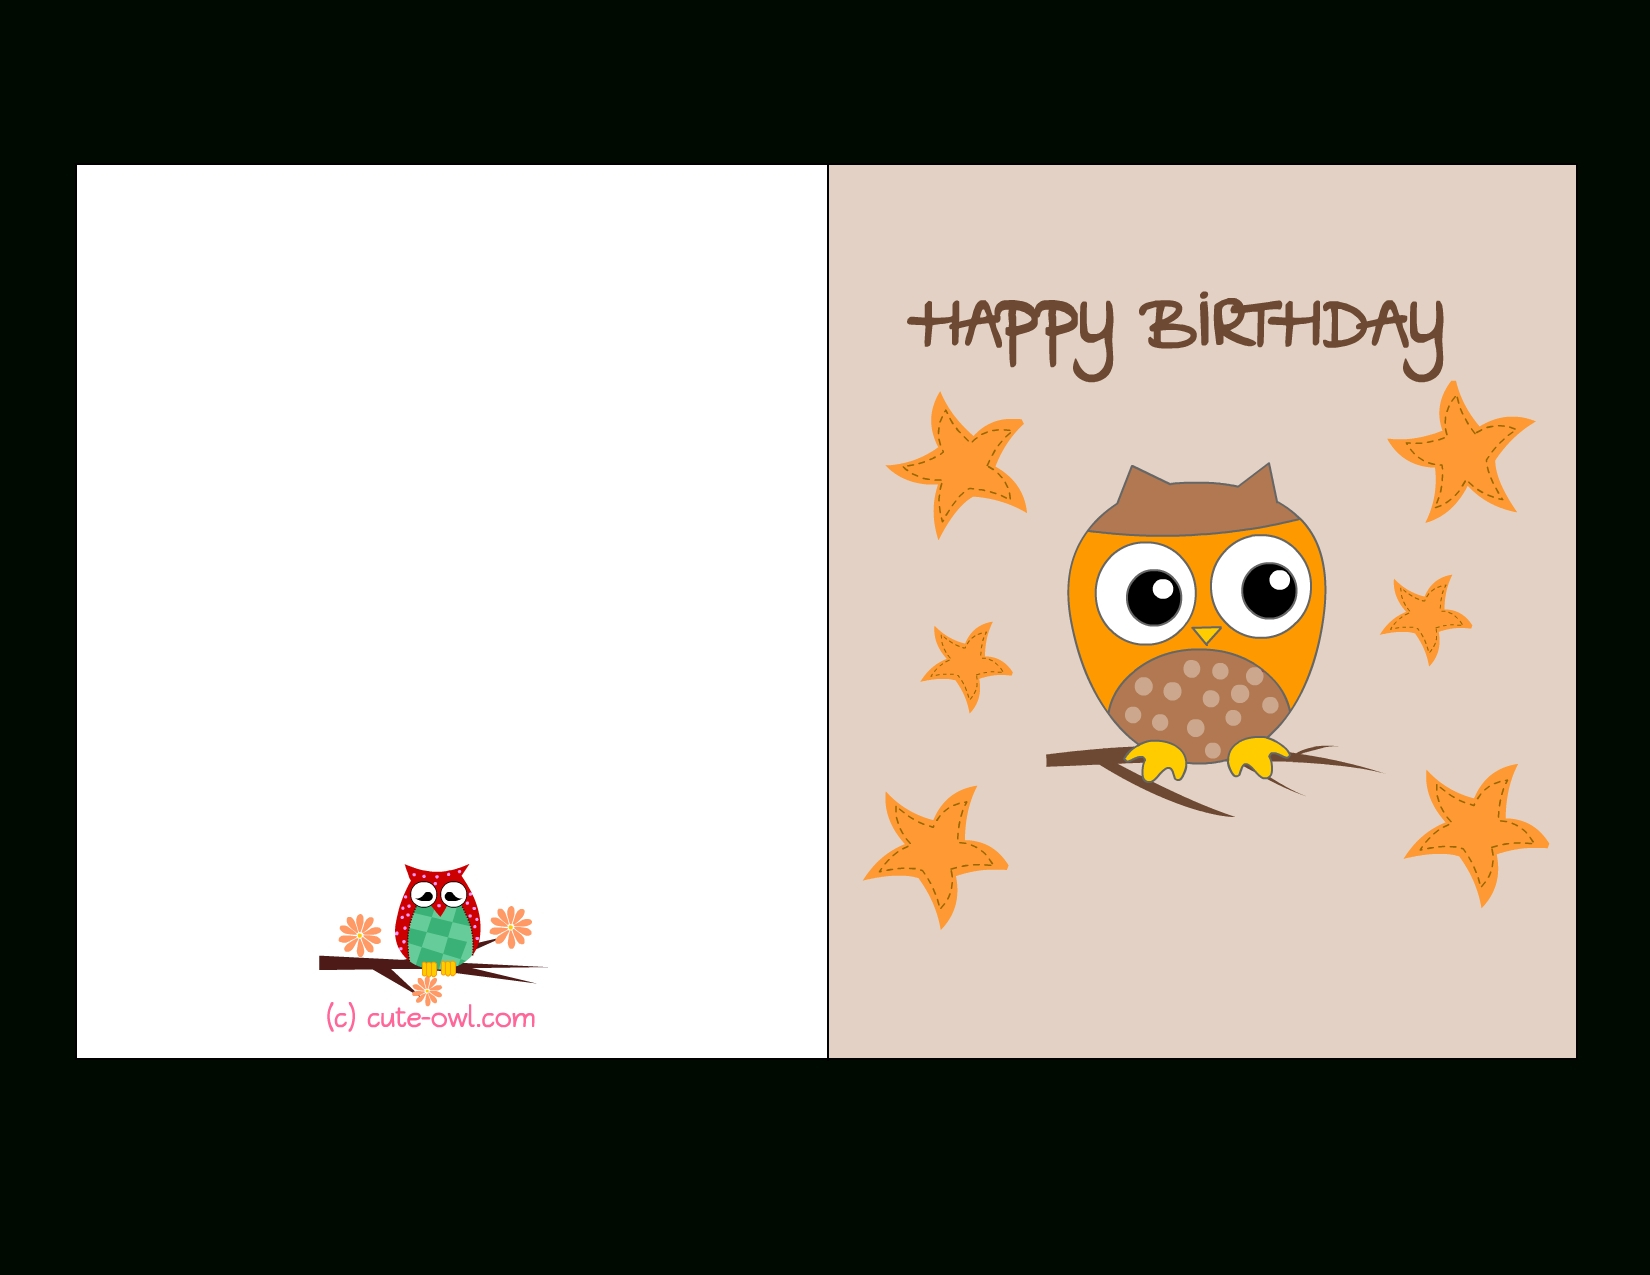 Free Printable Cute Owl Birthday Cards Within Free Printable - Free Printable Birthday Cards For Adults